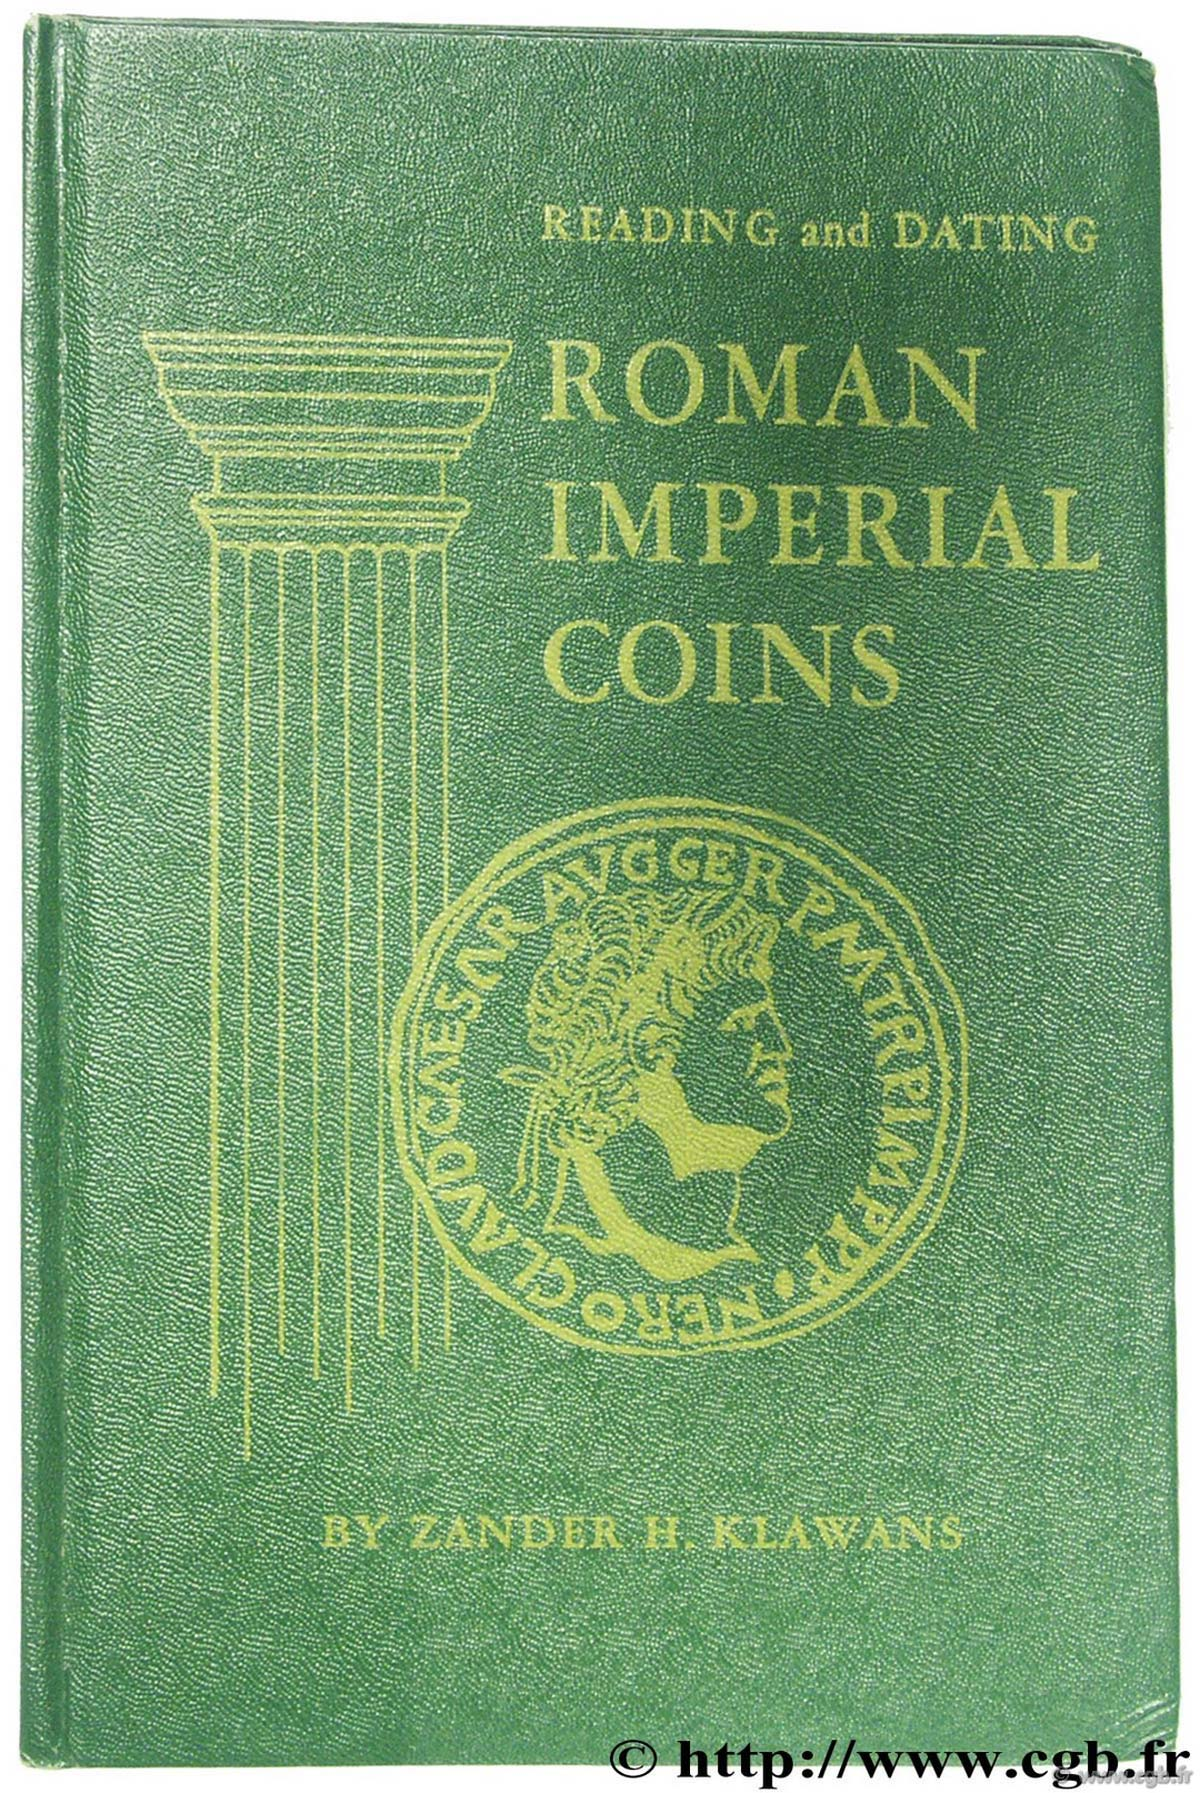 Roman Imperial Coins fourth edition KLAWANS Z.-H.